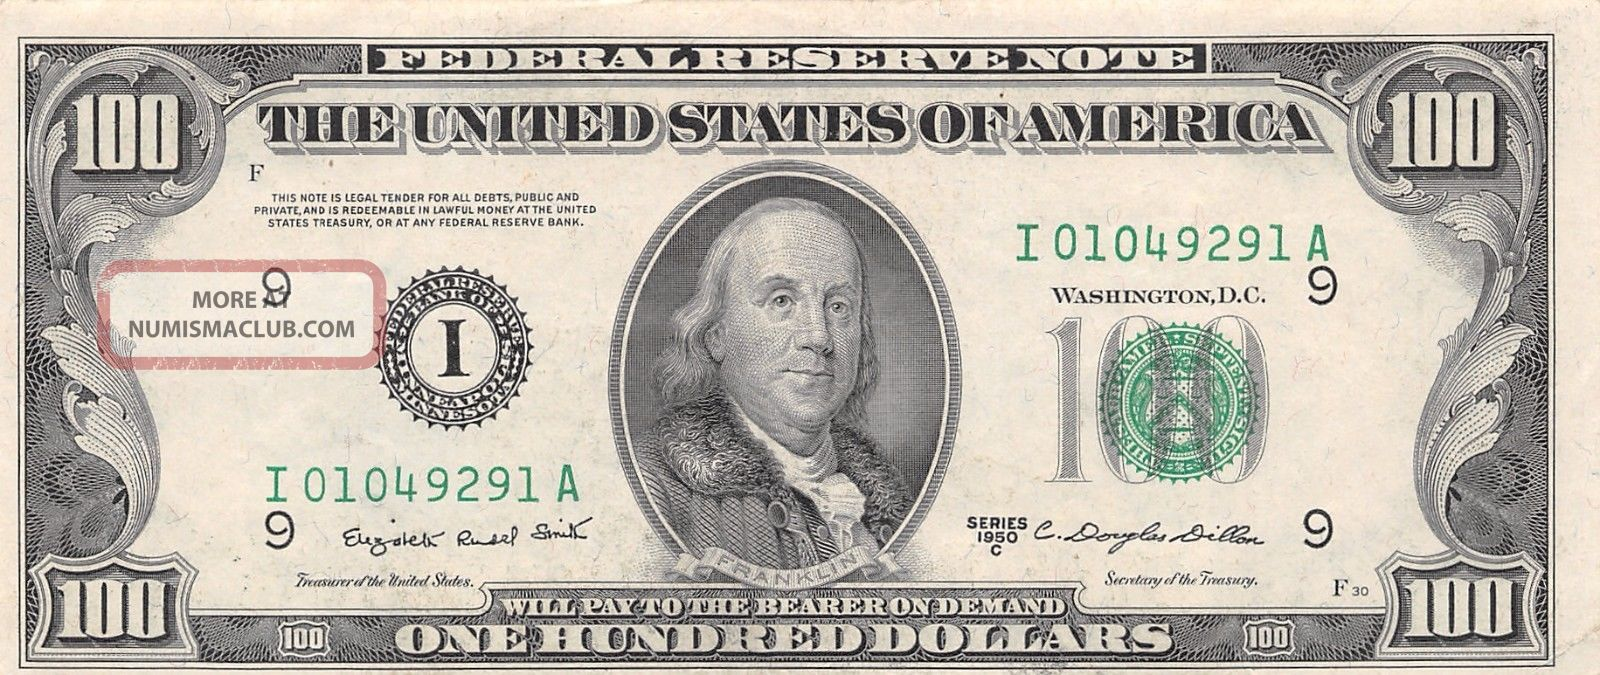 1950c Series I A Minneapolis 100 Dollar Federal Reserve Note